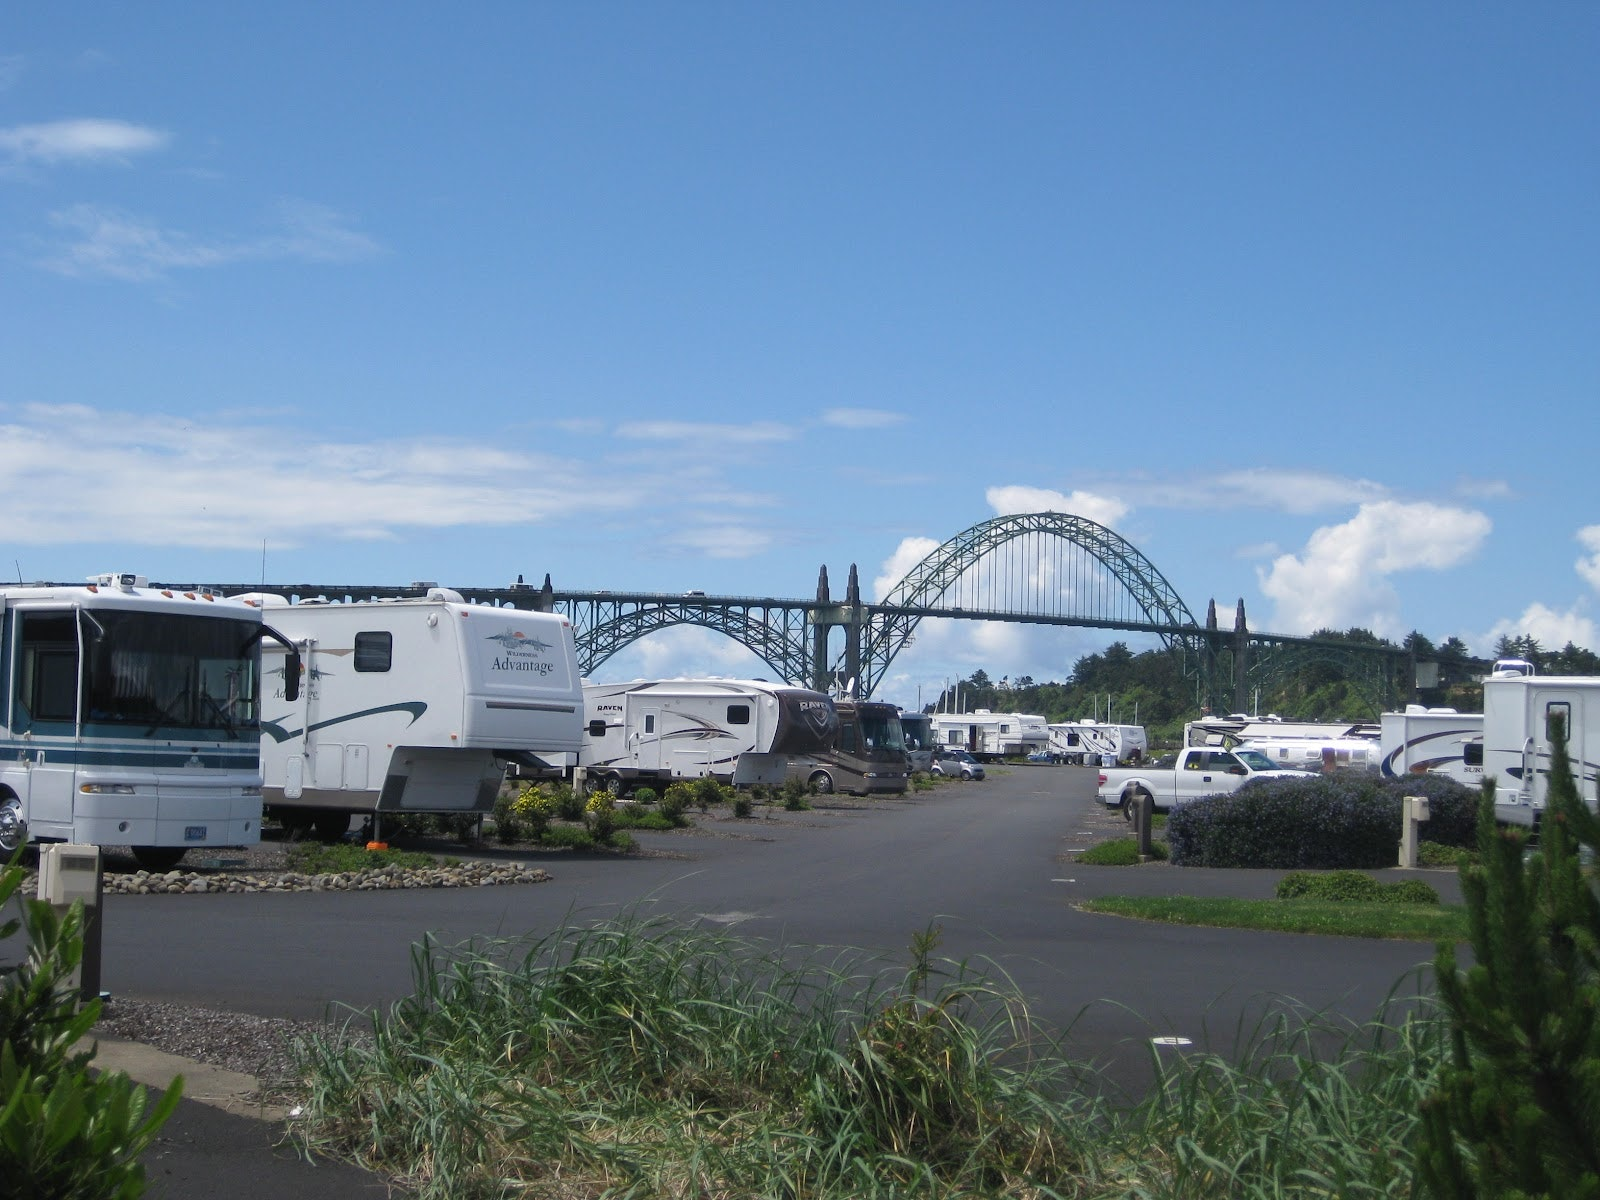 RVs with Yaquina Bay Bridge in the background